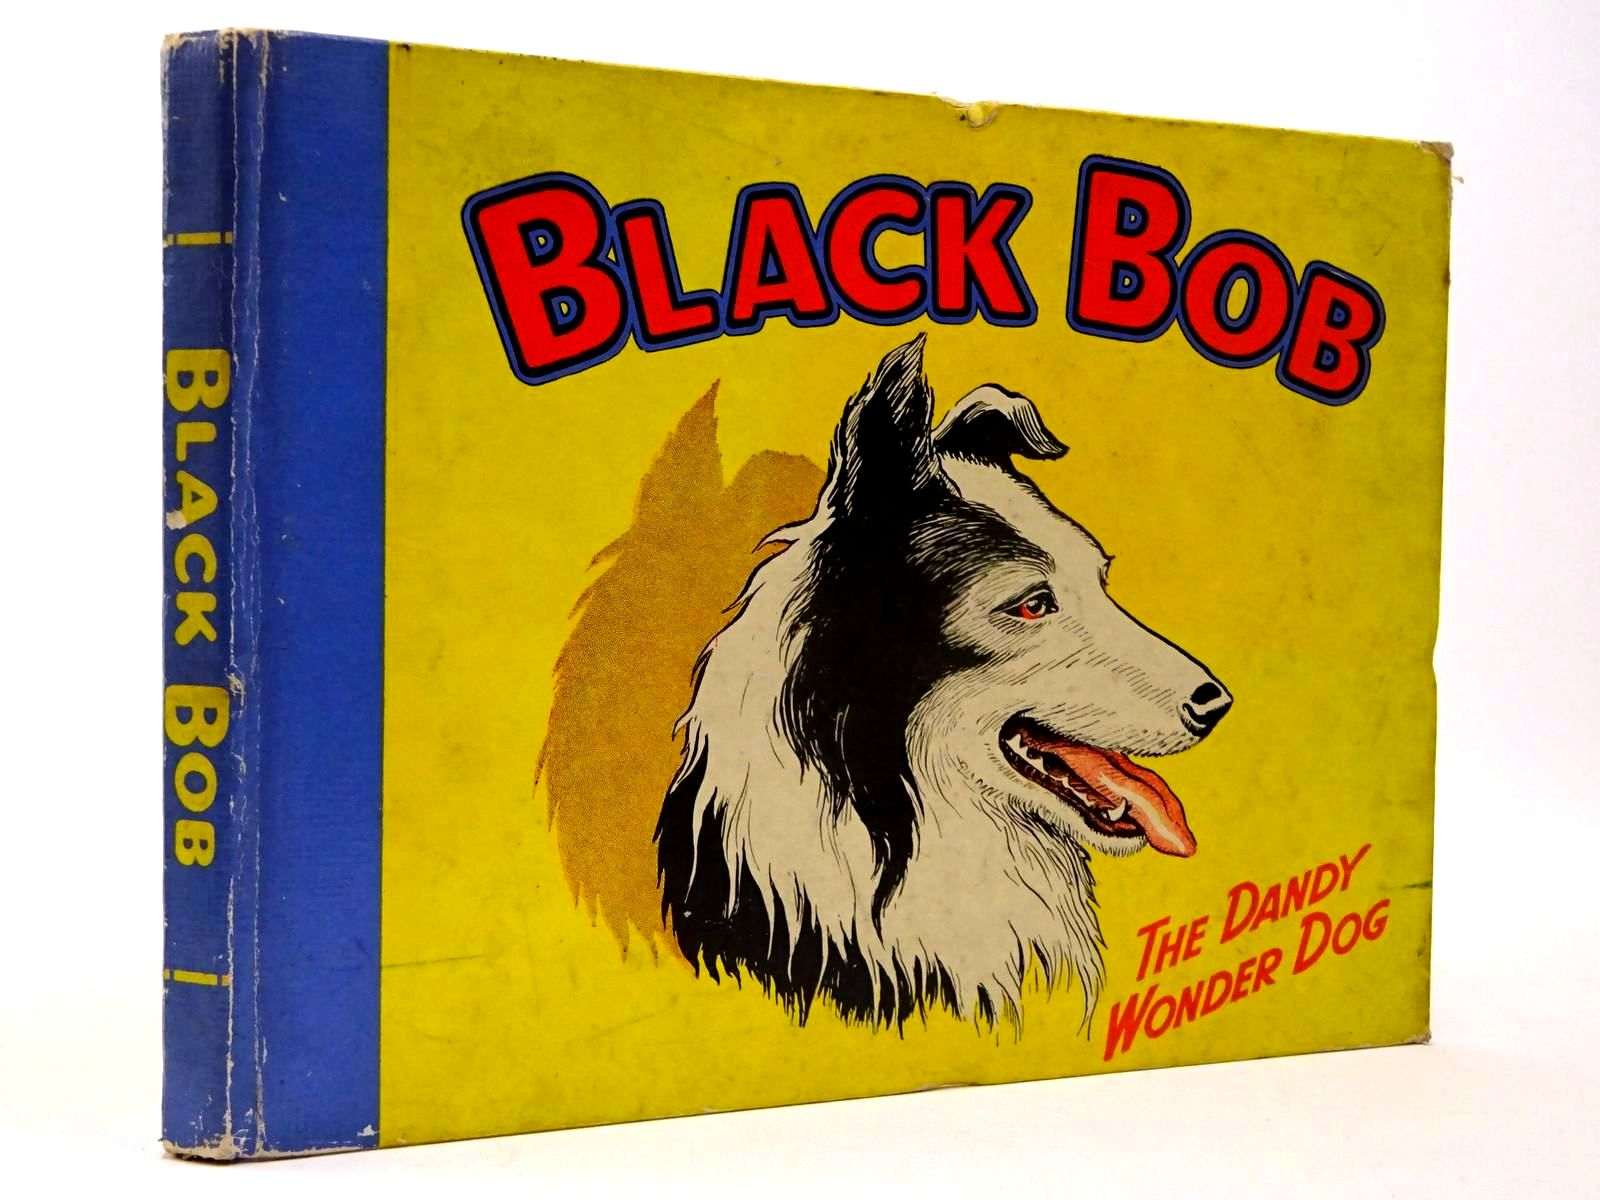 Photo of BLACK BOB THE DANDY WONDER DOG 1955 illustrated by Prout, Jack published by D.C. Thomson & Co Ltd. (STOCK CODE: 2130152)  for sale by Stella & Rose's Books